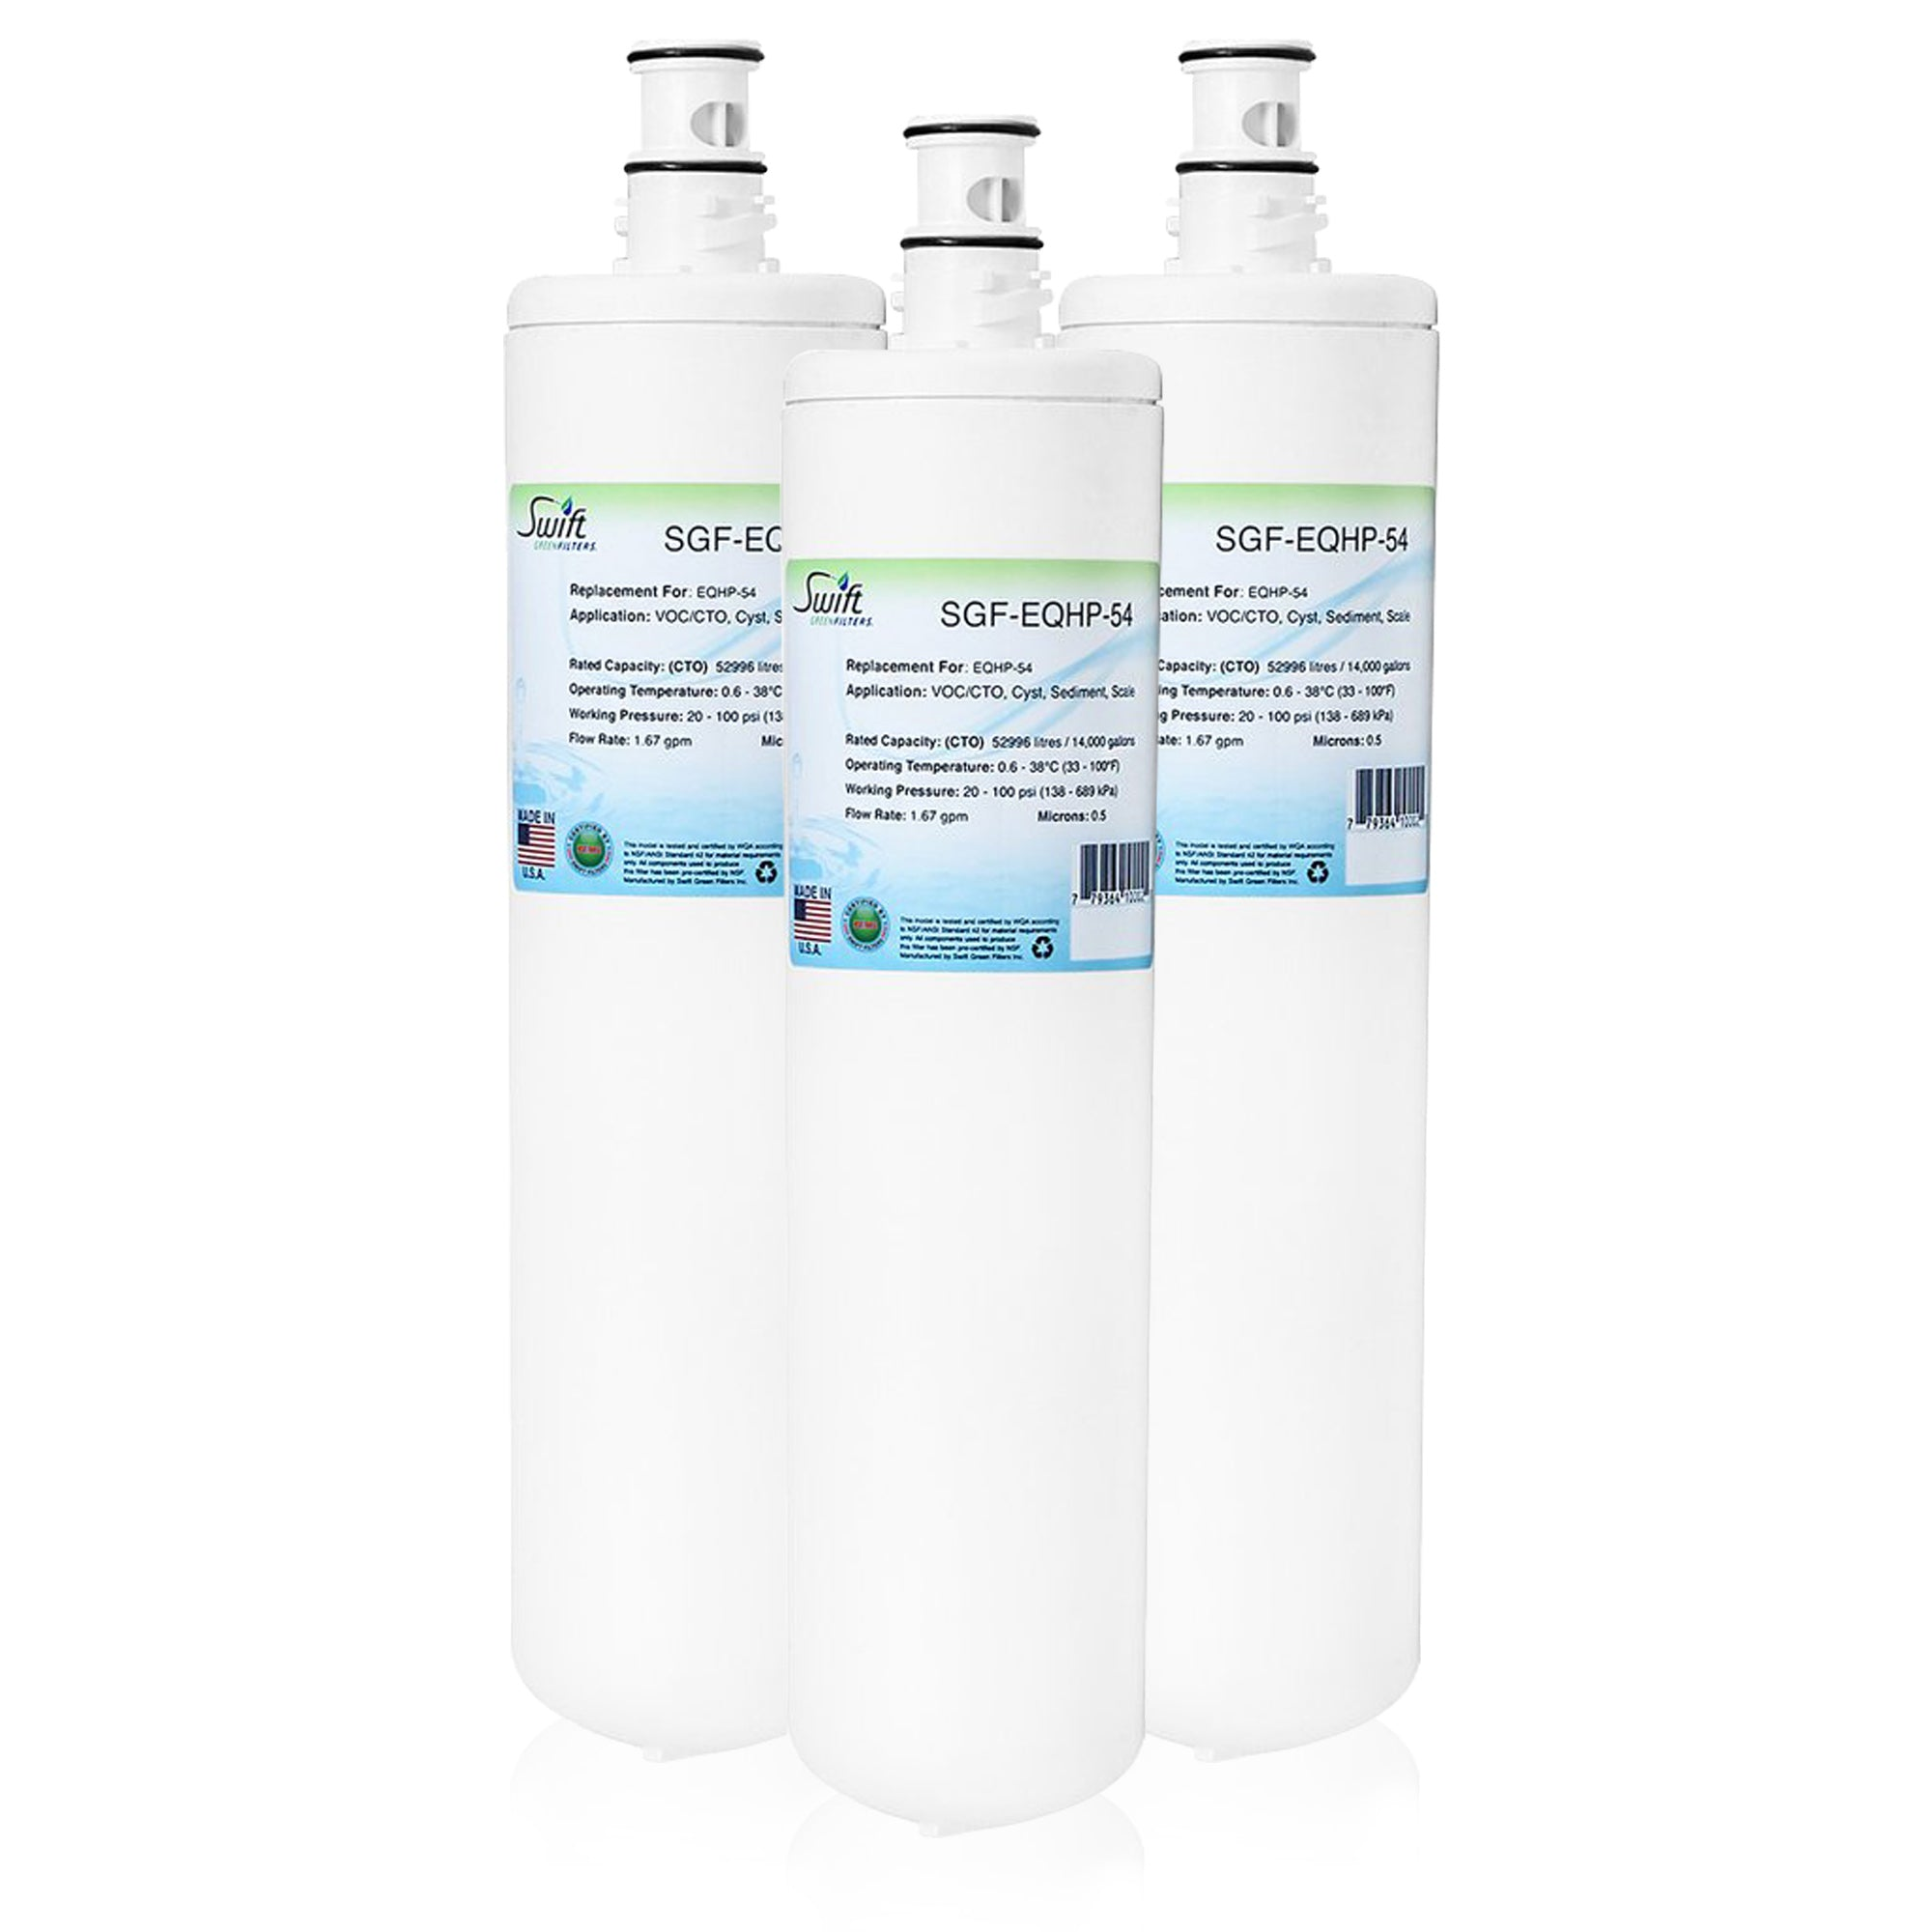 Replacement for Bunn Bunn EQHP-54 Water Filter by Swift Green Filters SGF-EQHP-54